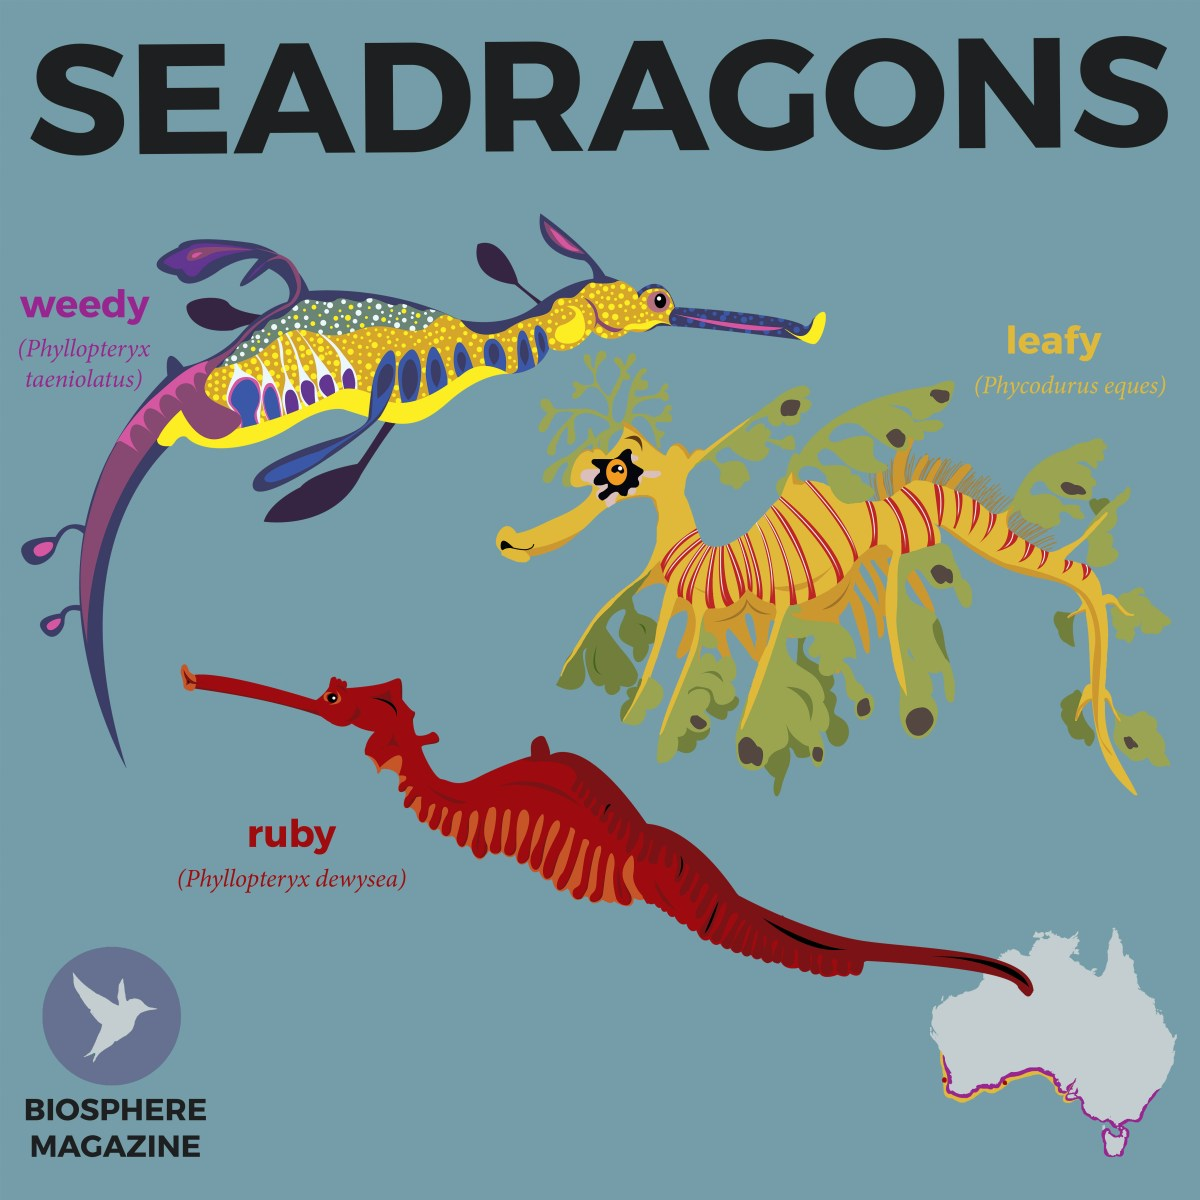 Meet the Seadragons - Biosphere Magazine